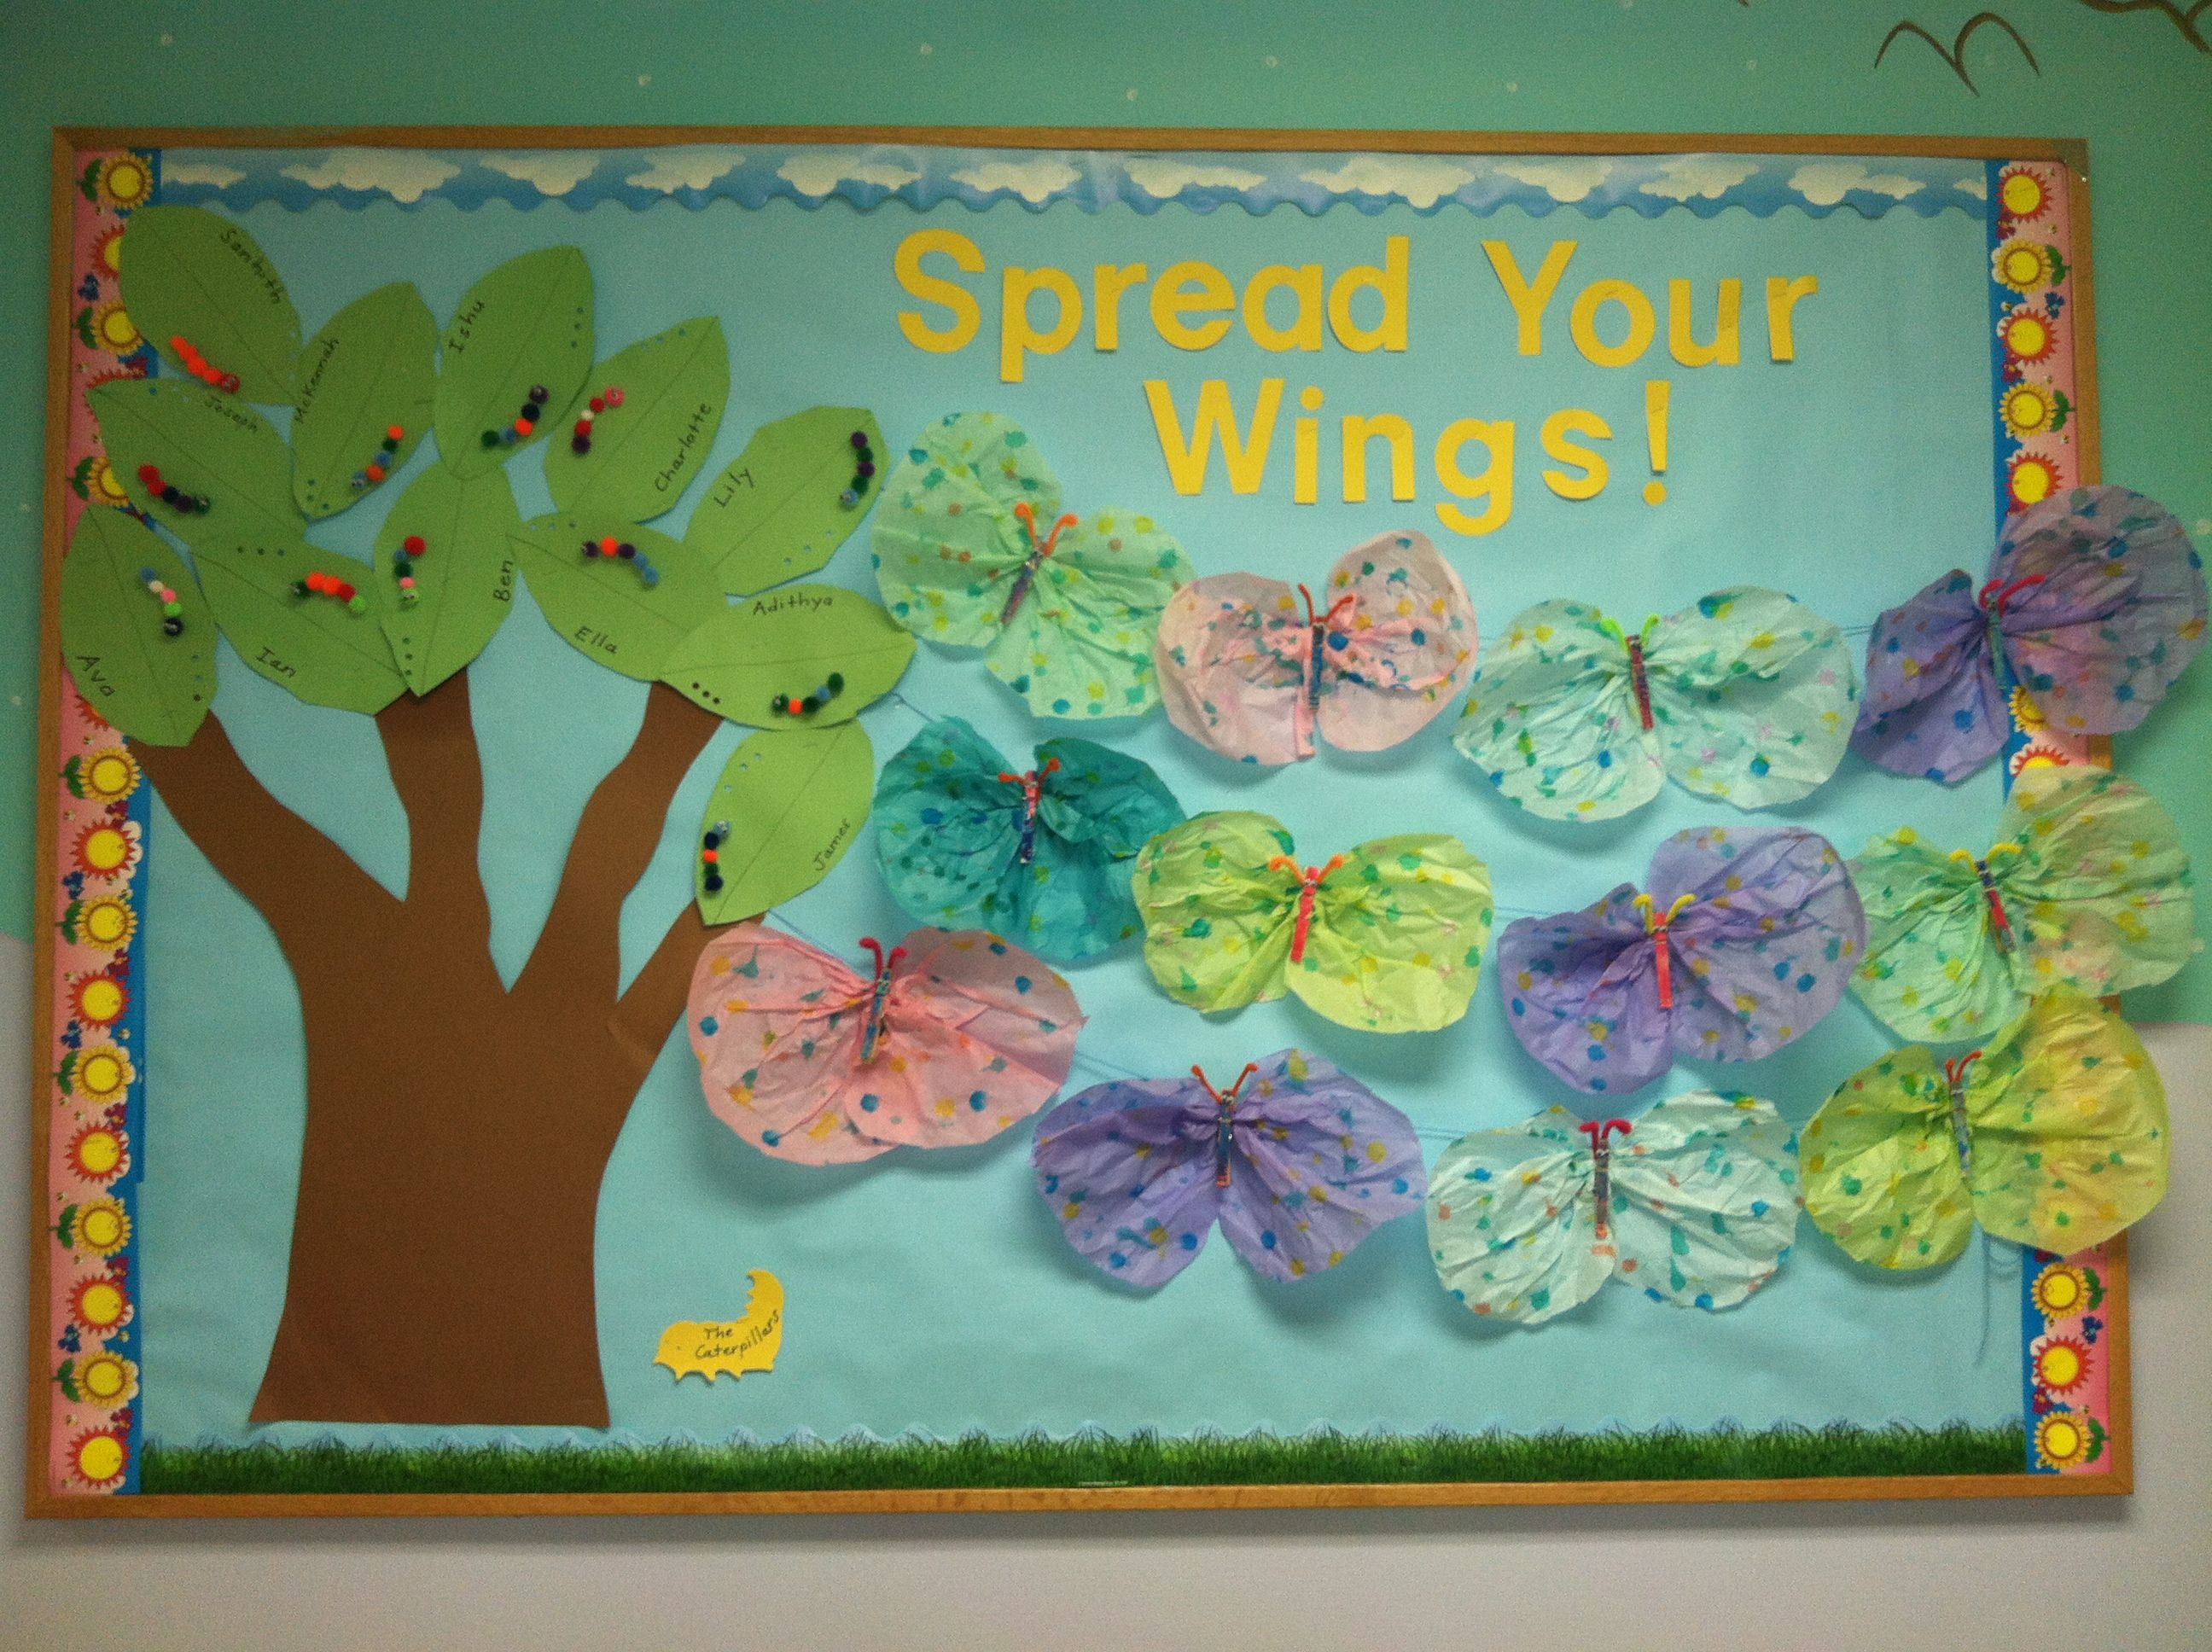 Go green vegetable bulletin board idea myclassroomideas com - Free Spring Bulletin Board For Kindergarten And Toddlers Spring Classroom Door Idea For Kids Spring Classroom Door Decoration Idea